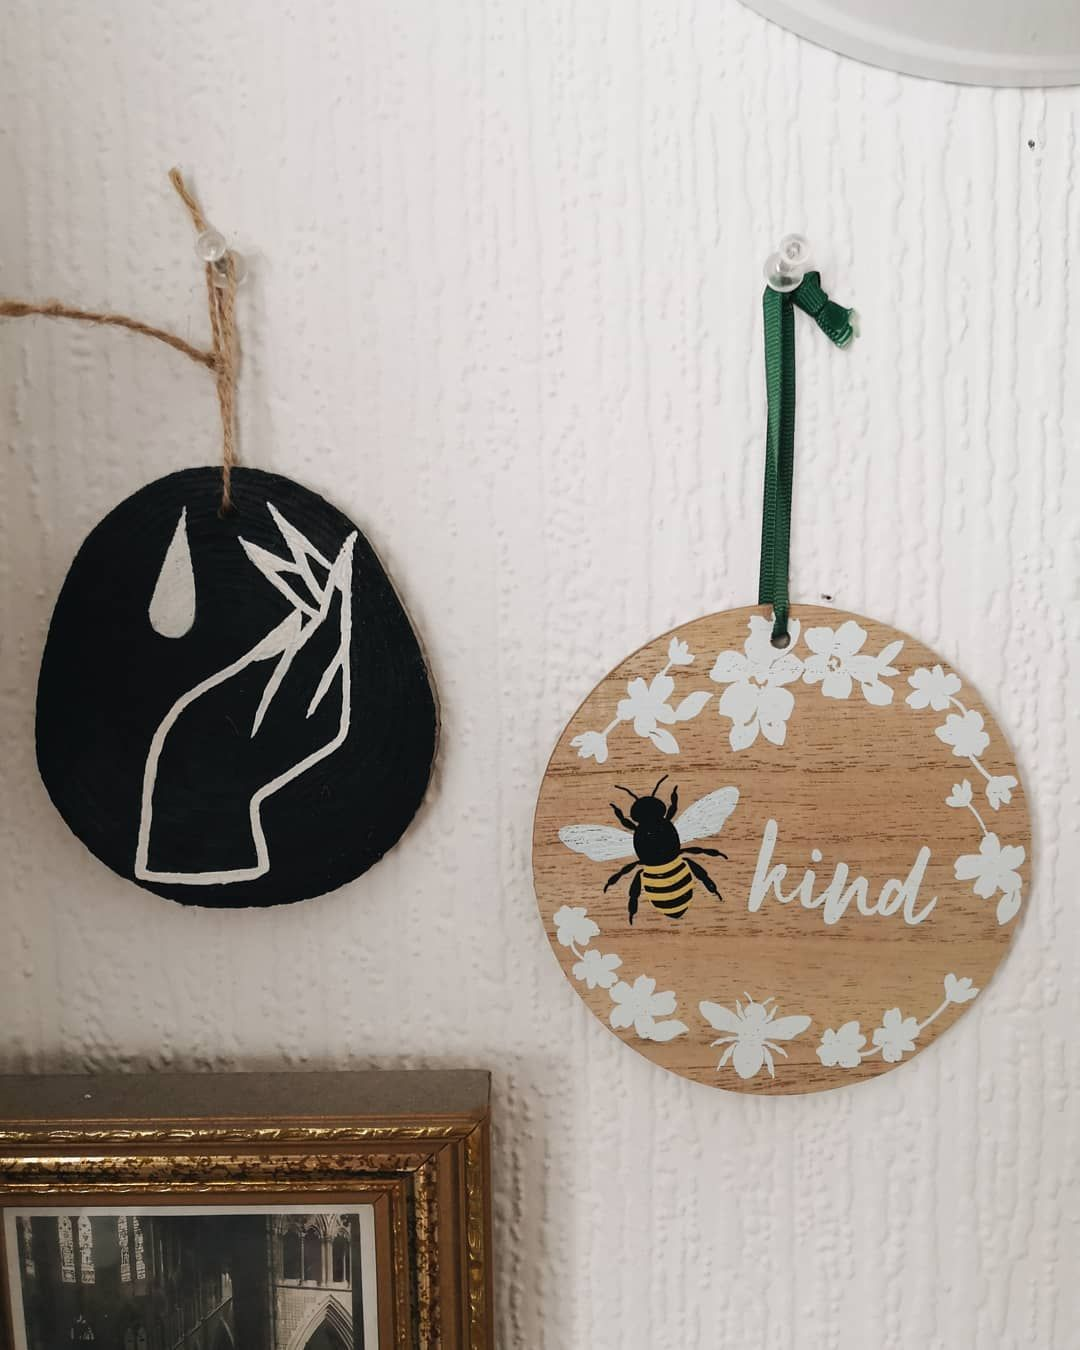 Posted on my story also but  couldn't resist posting this lovely little wood hanging I got from b&m today! Me and @halfarsedhousewife got matching ones